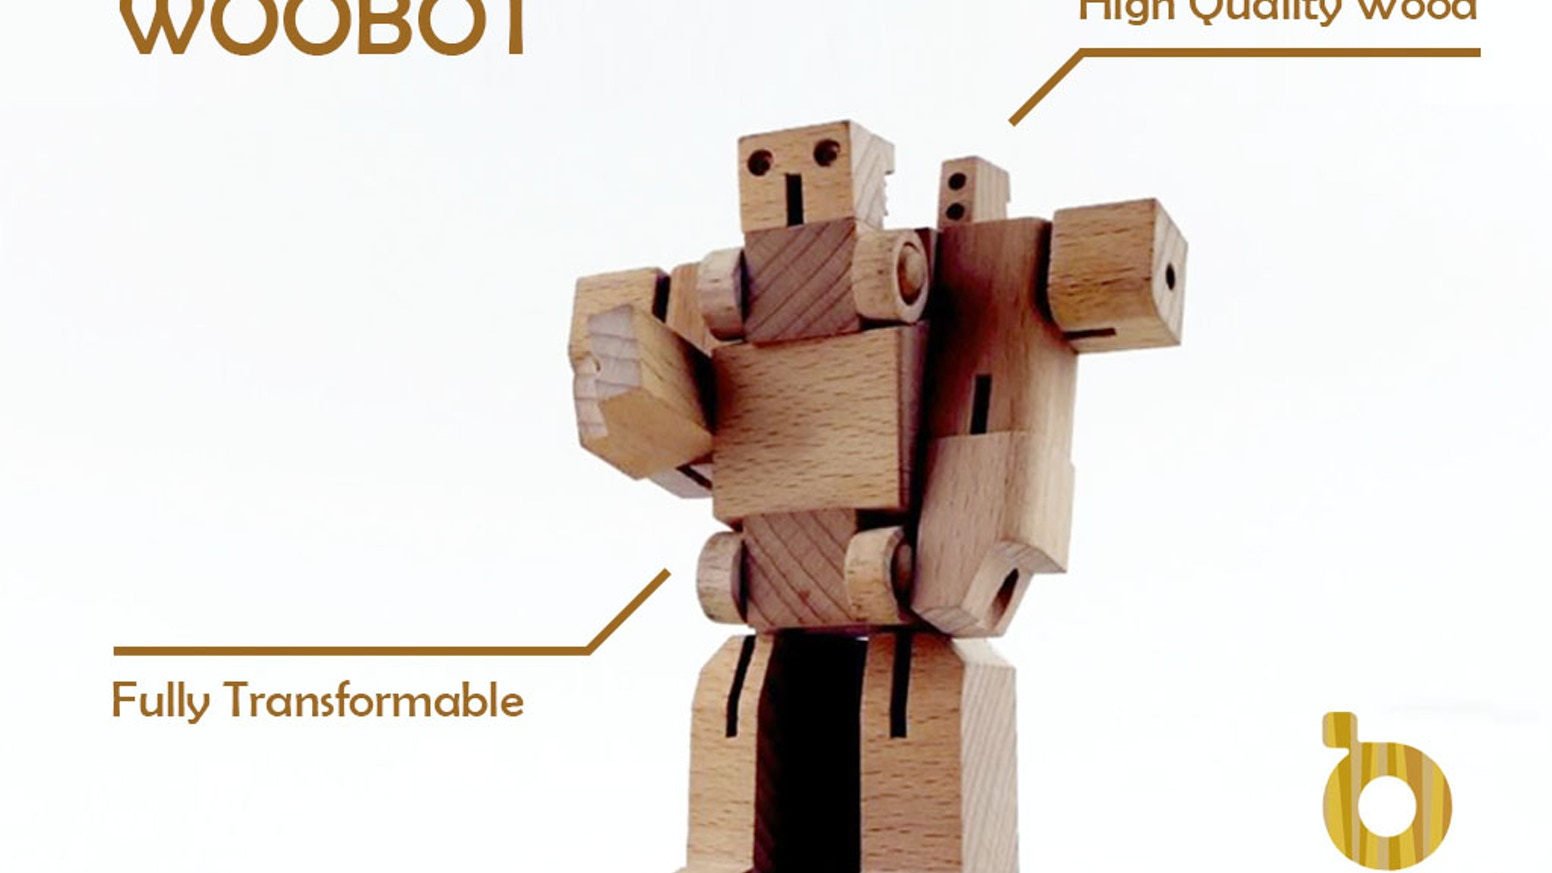 High-quality wood robot collection designed for action-packed fun, just in time for Christmas. Play, transform and enjoy!